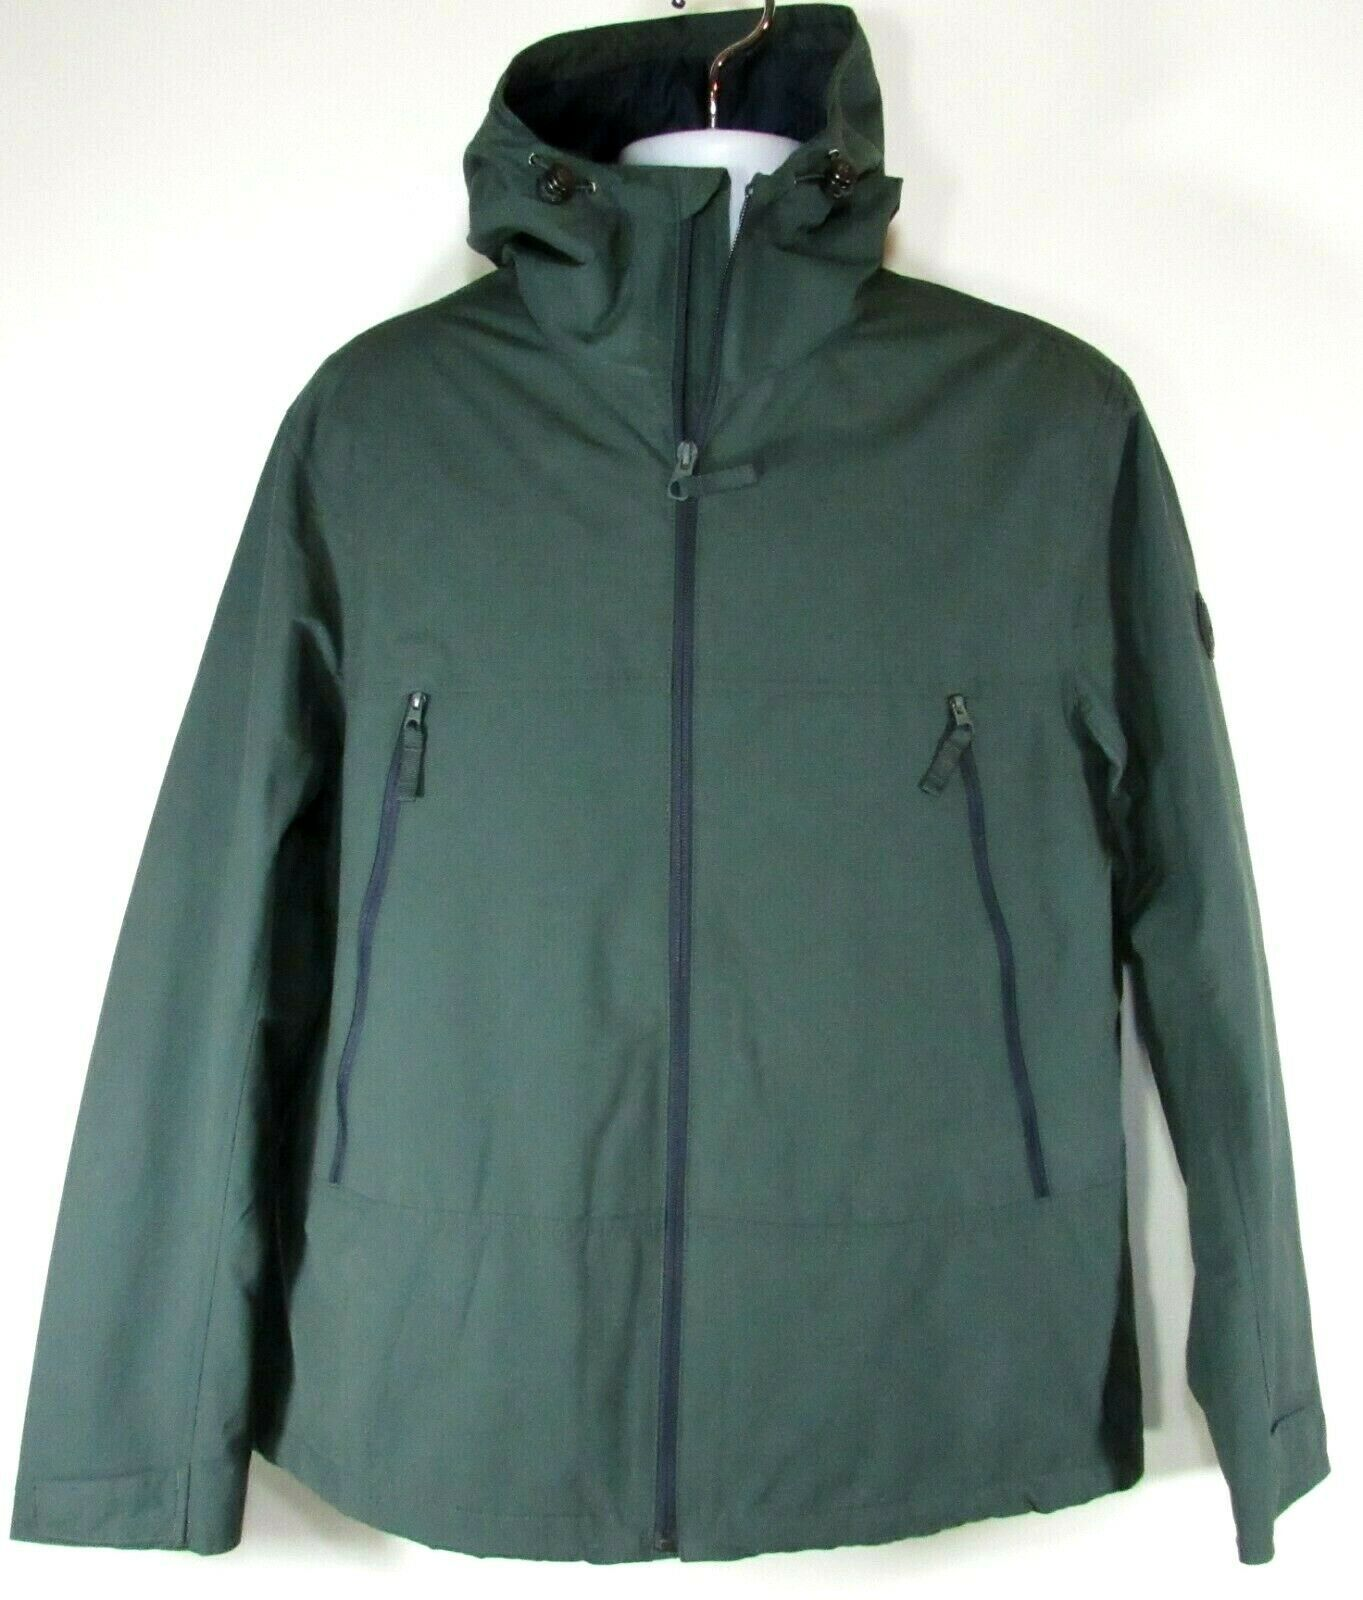 TIMBERLAND A1N1P-E20 MEN'S DK.GREEN HOODED JACKET